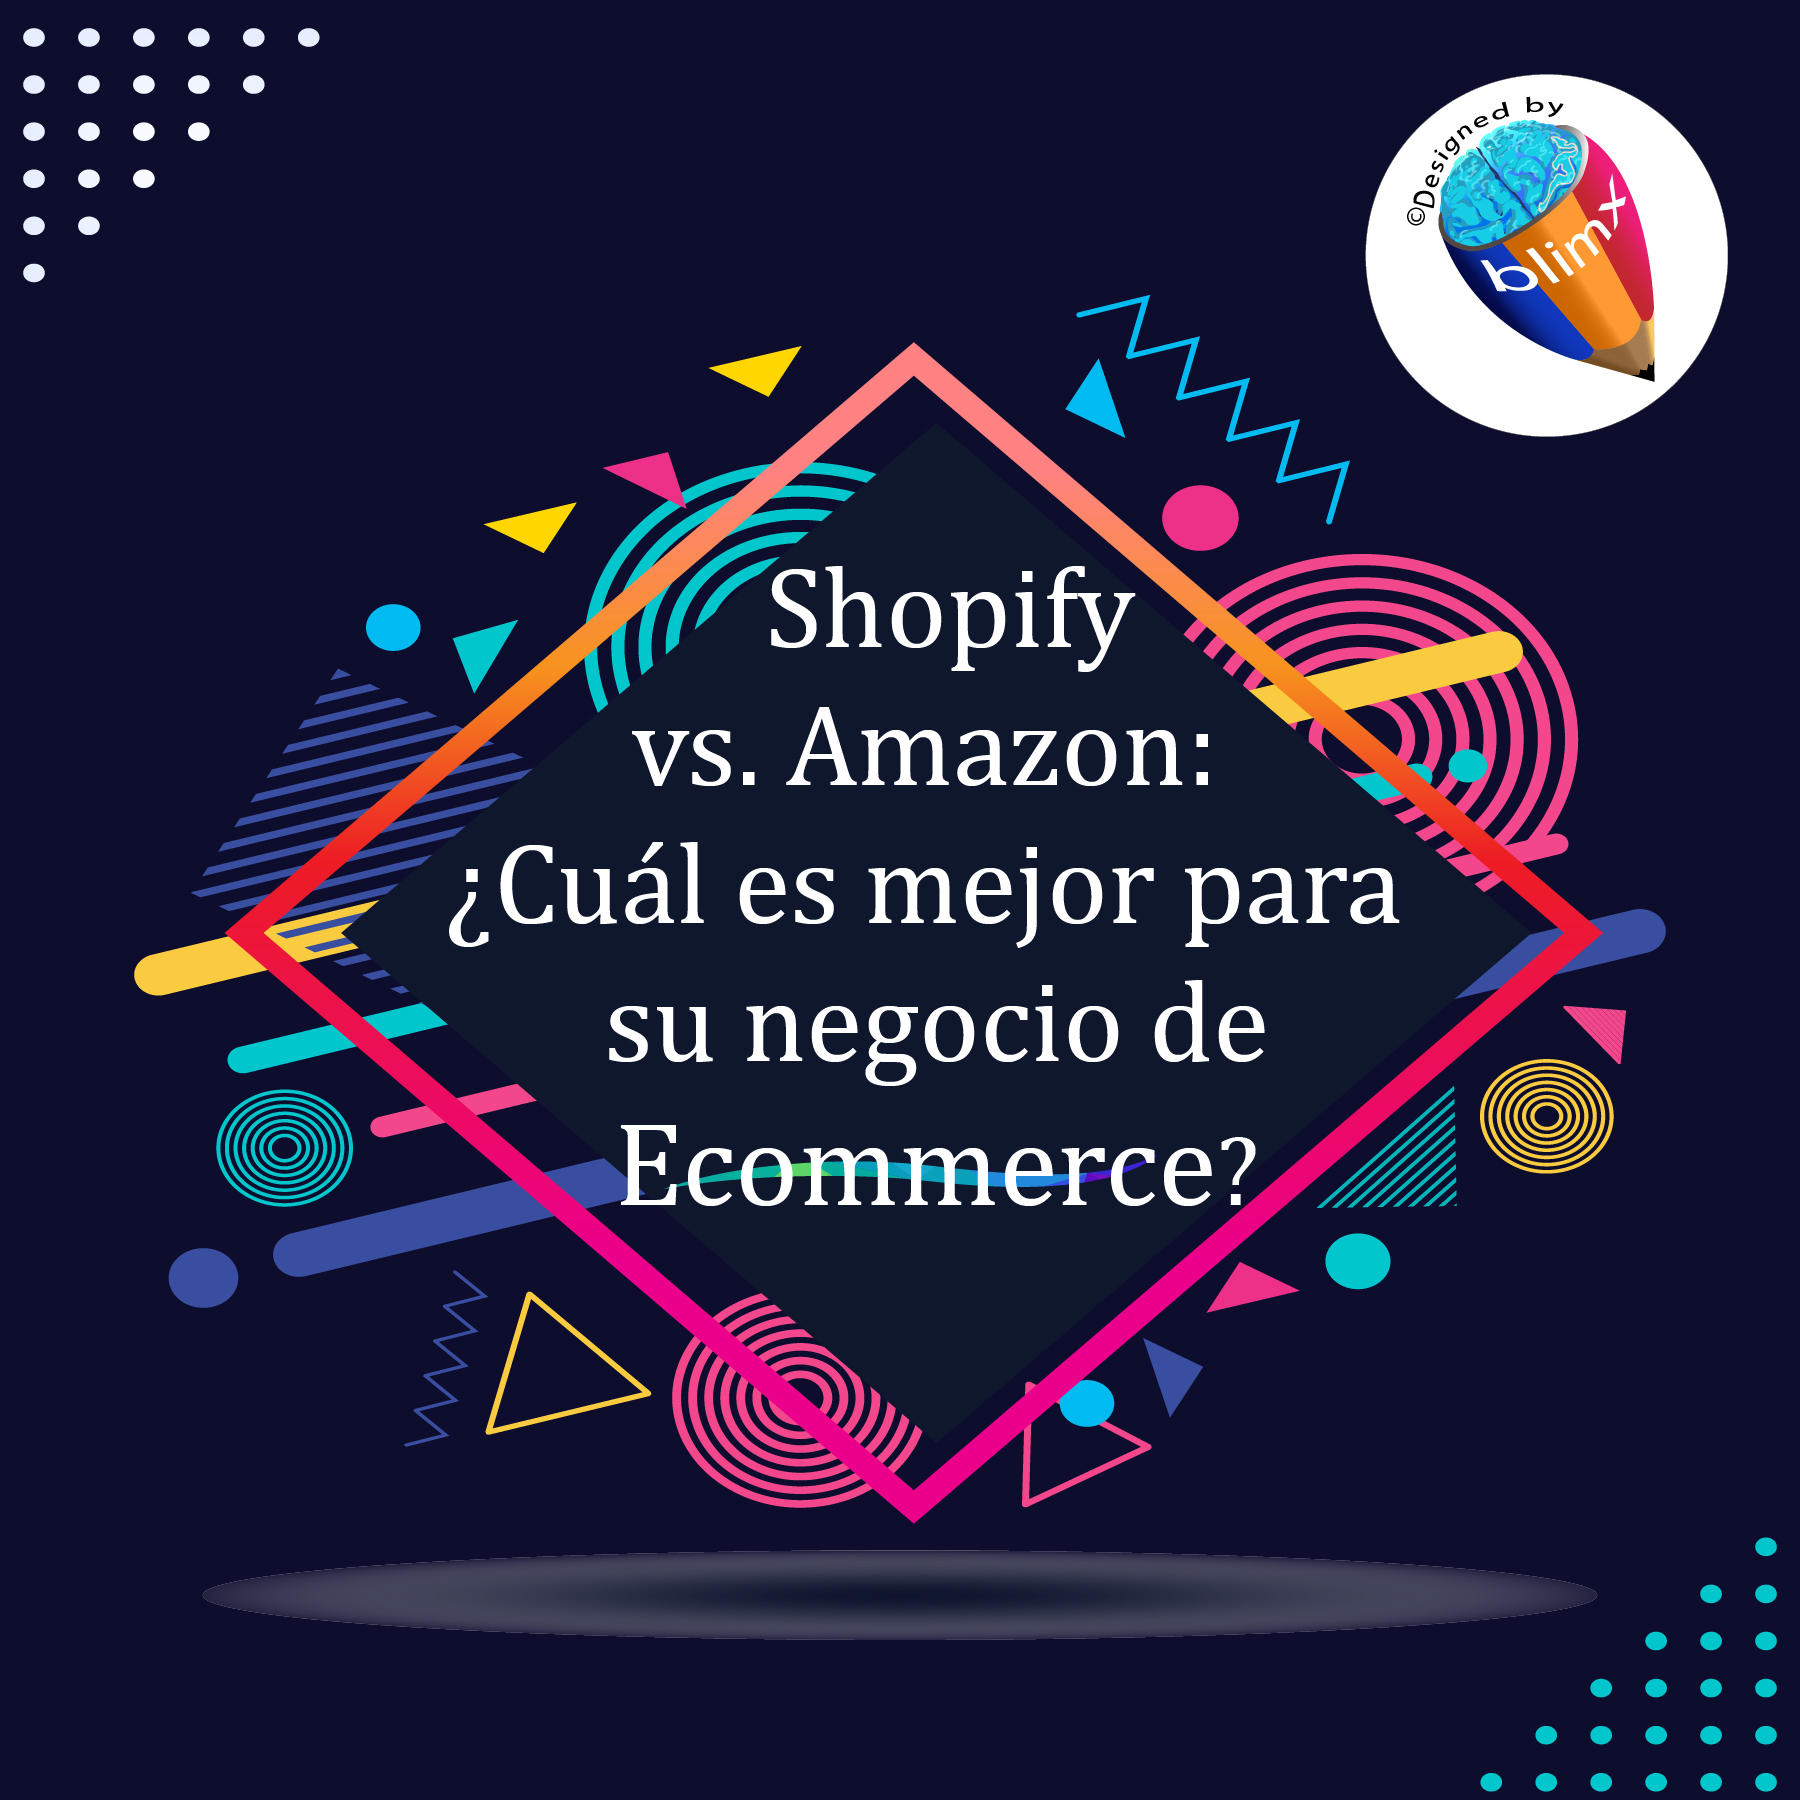 Shopify vs. Amazon: Which is Better for Your Ecommerce Business?